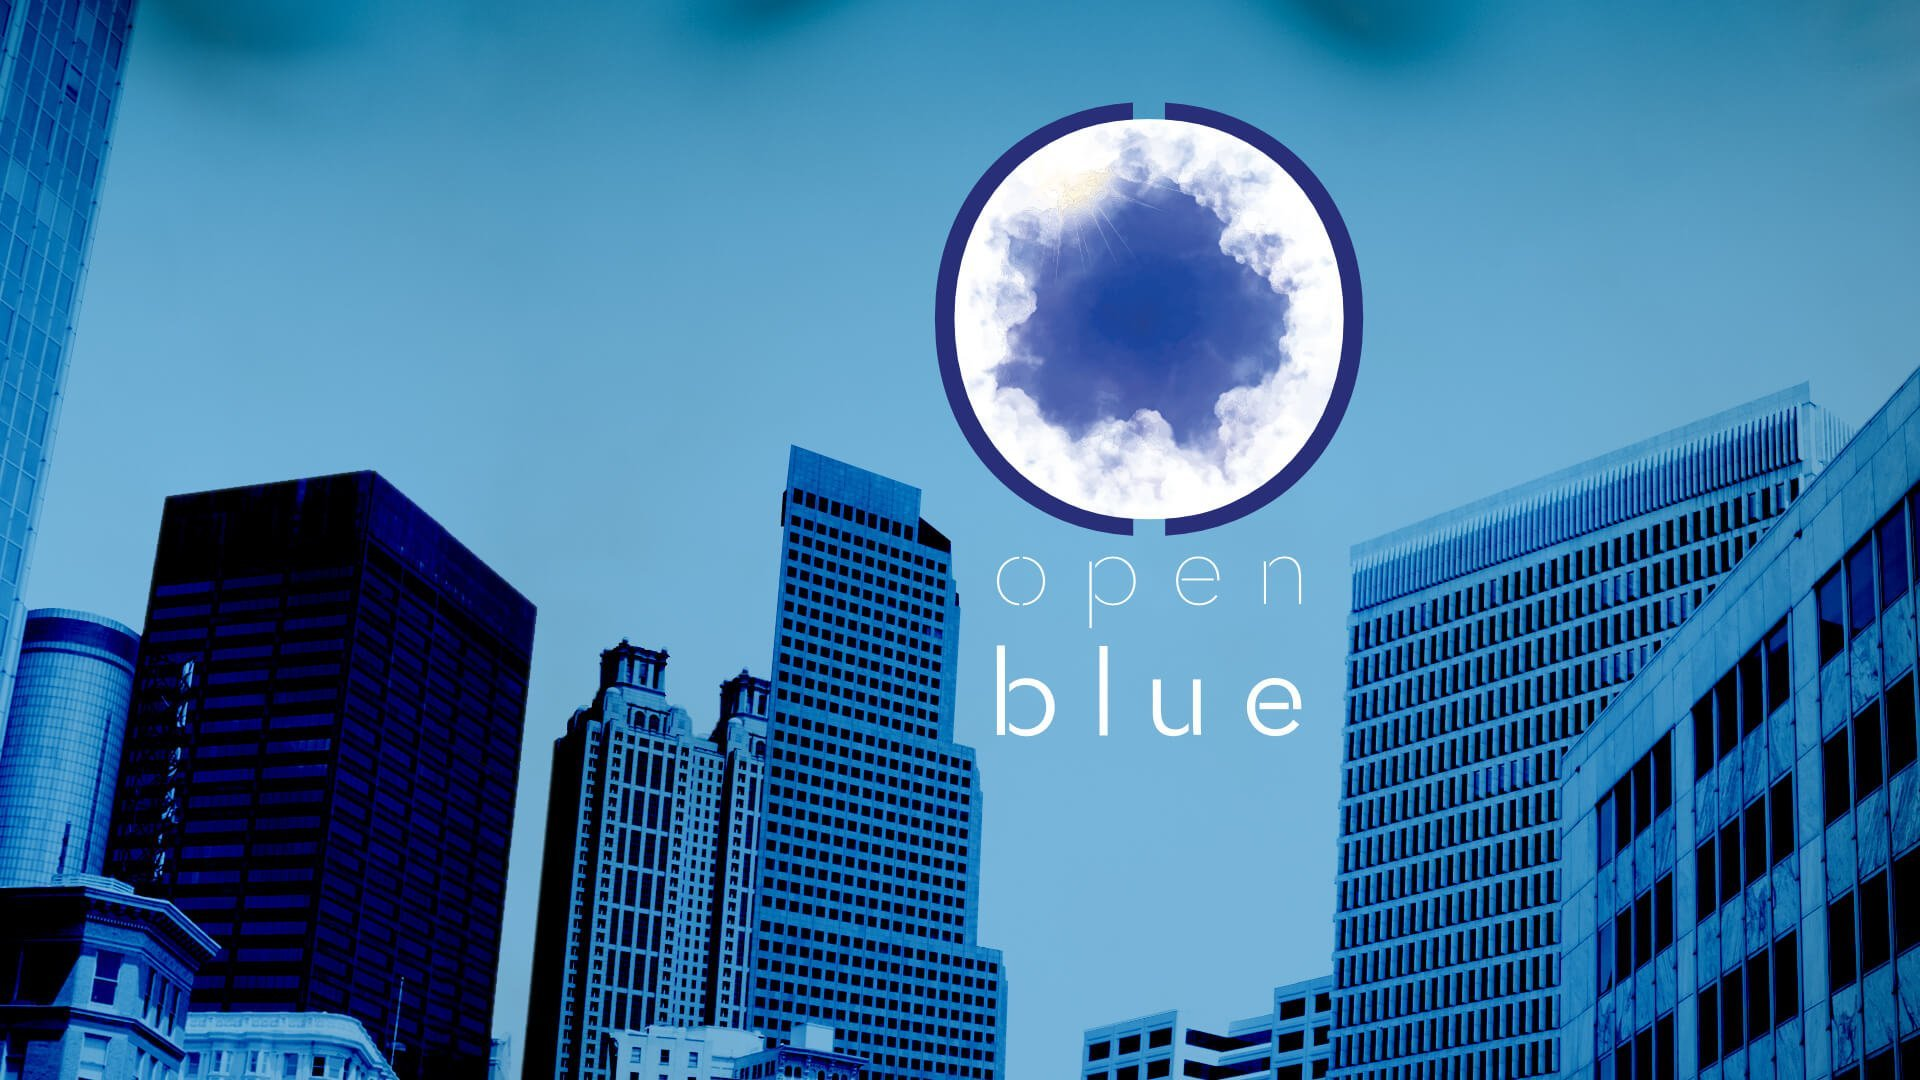 Welcome to Open Blue!